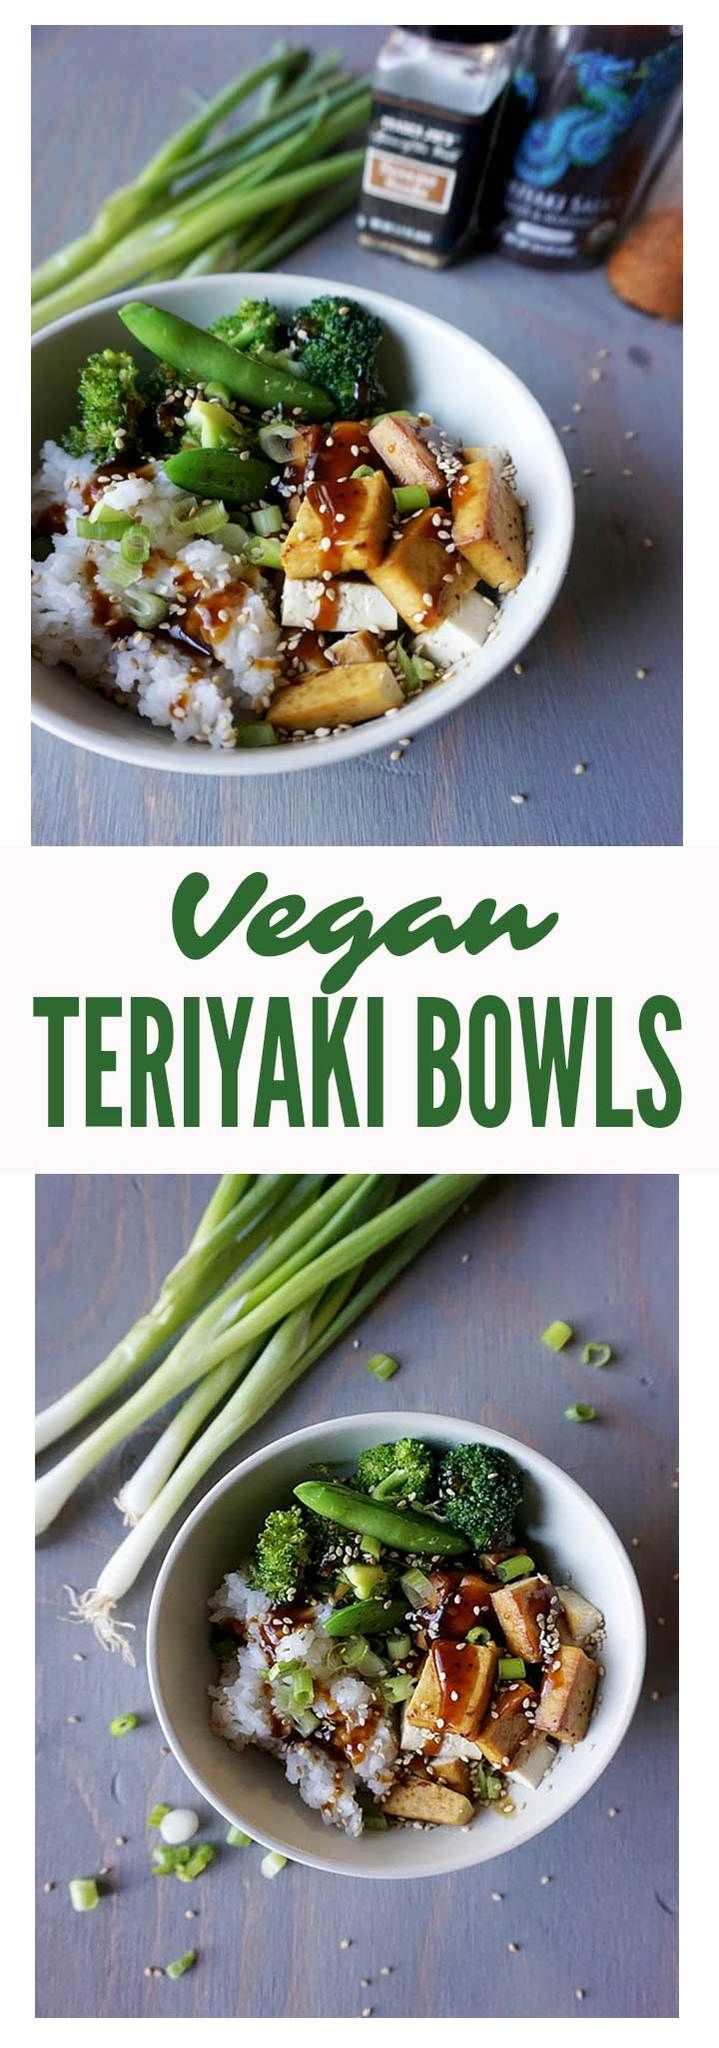 Vegan Teriyaki Bowls (check ingredients on Teriyaki sauce to ensure vegan and GF, and use brown rice or quinoa rather than white rice)